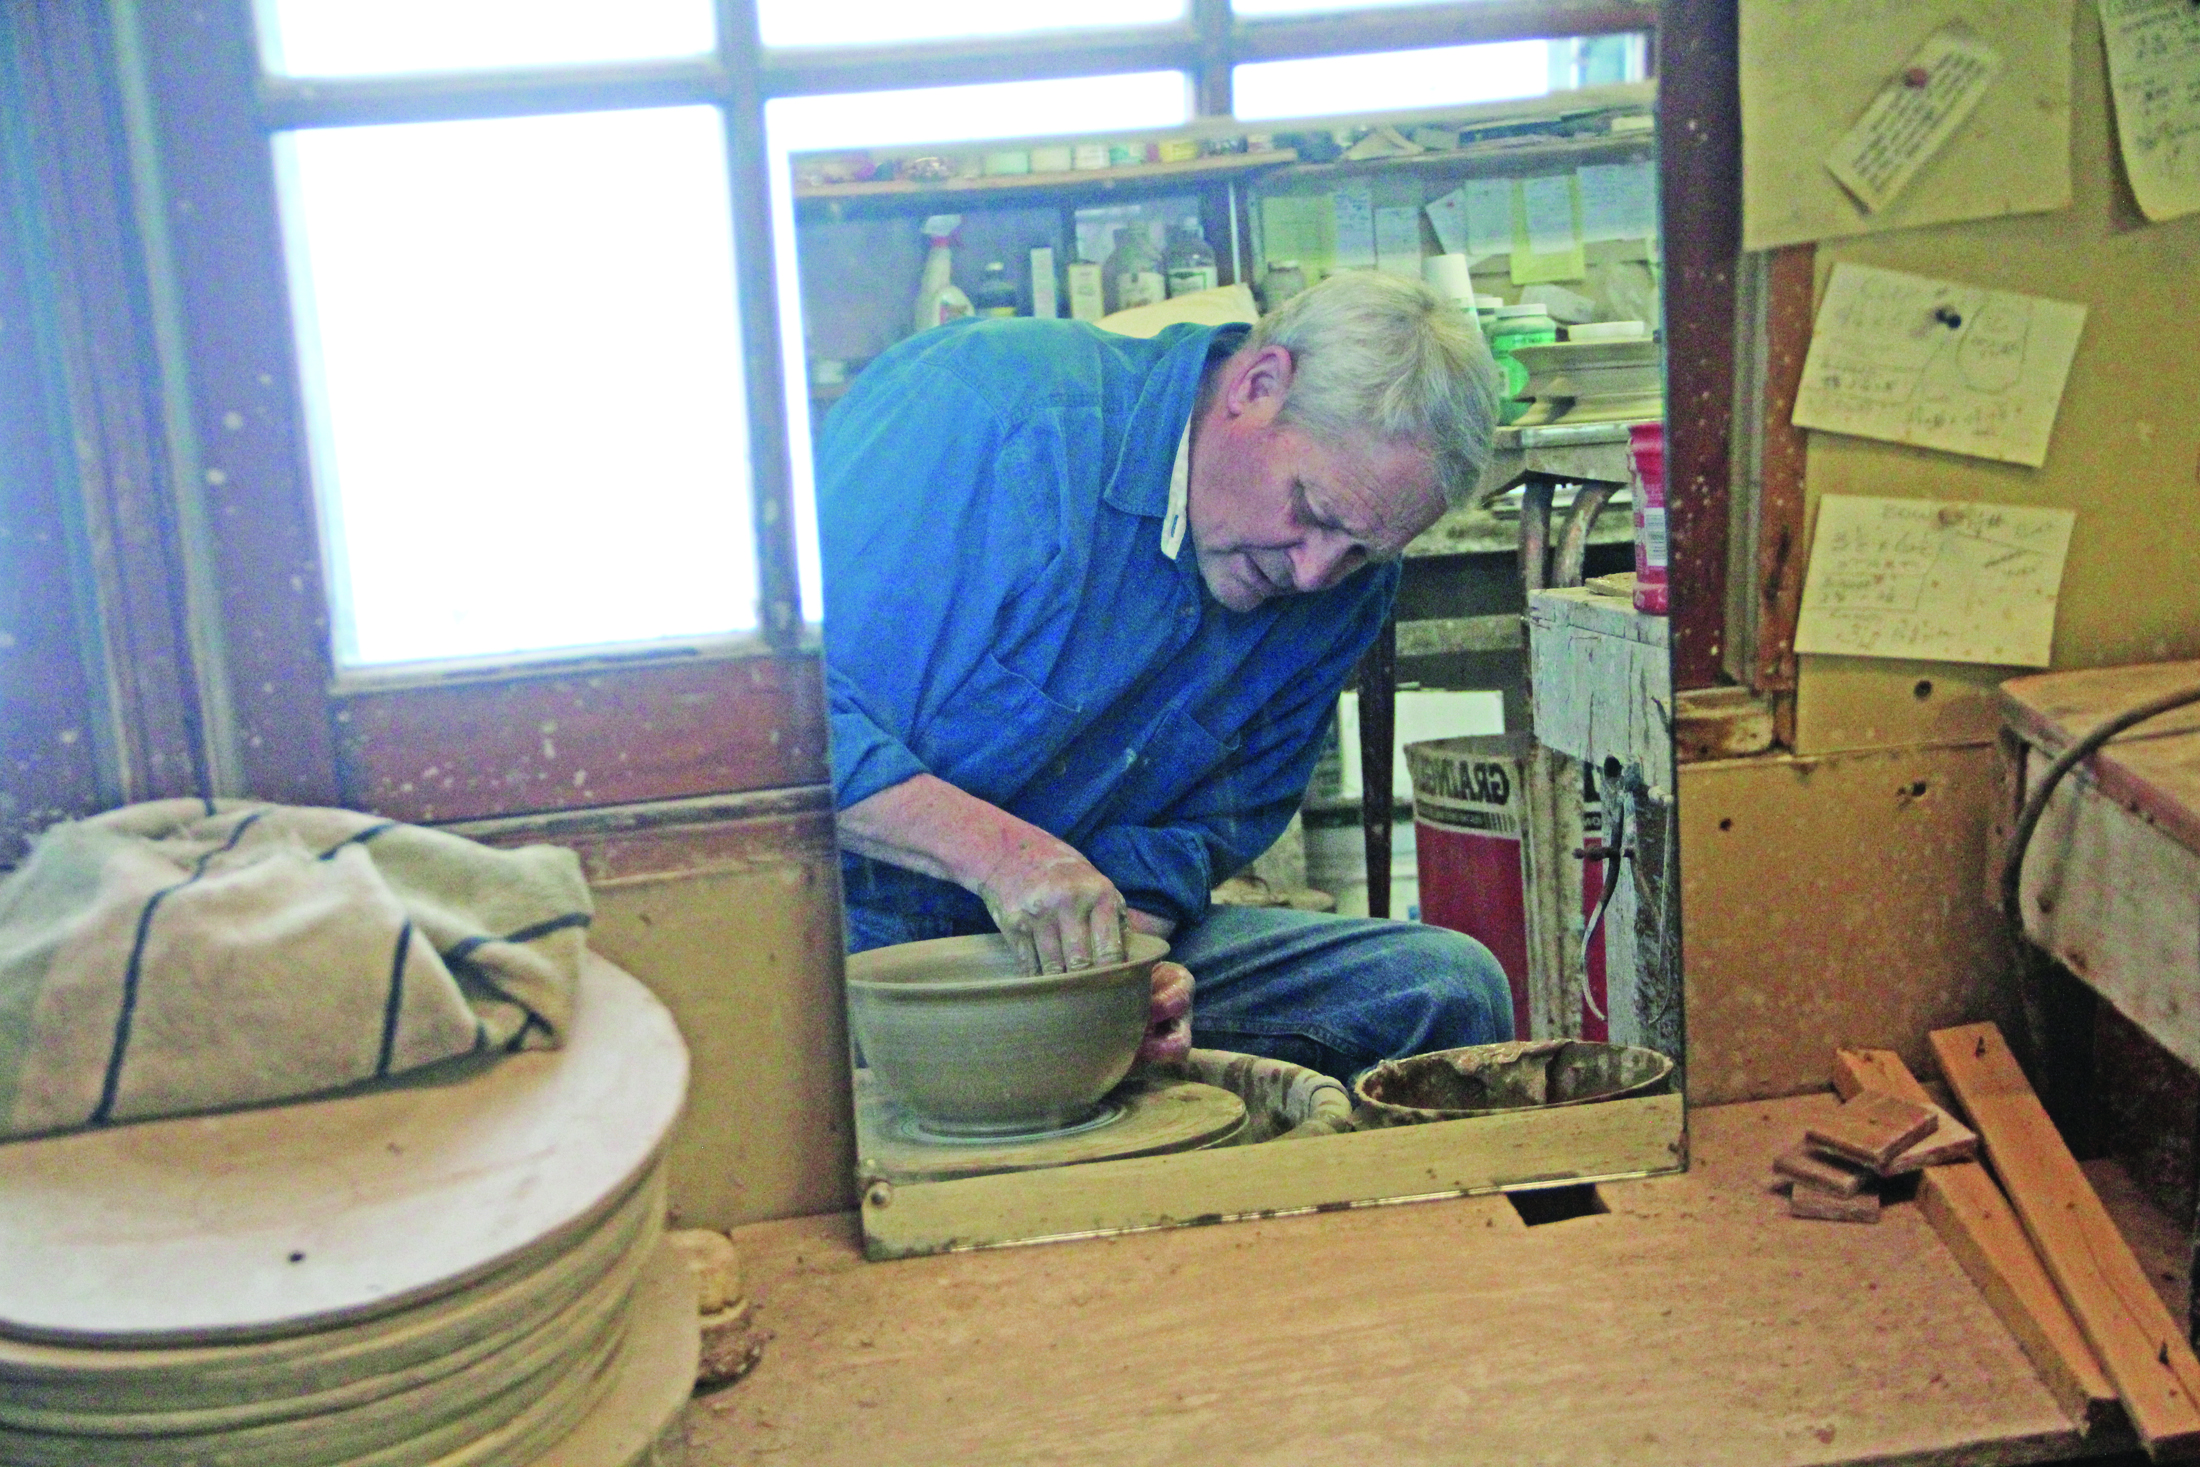 Filled with charm: Behind the creation of raku pottery